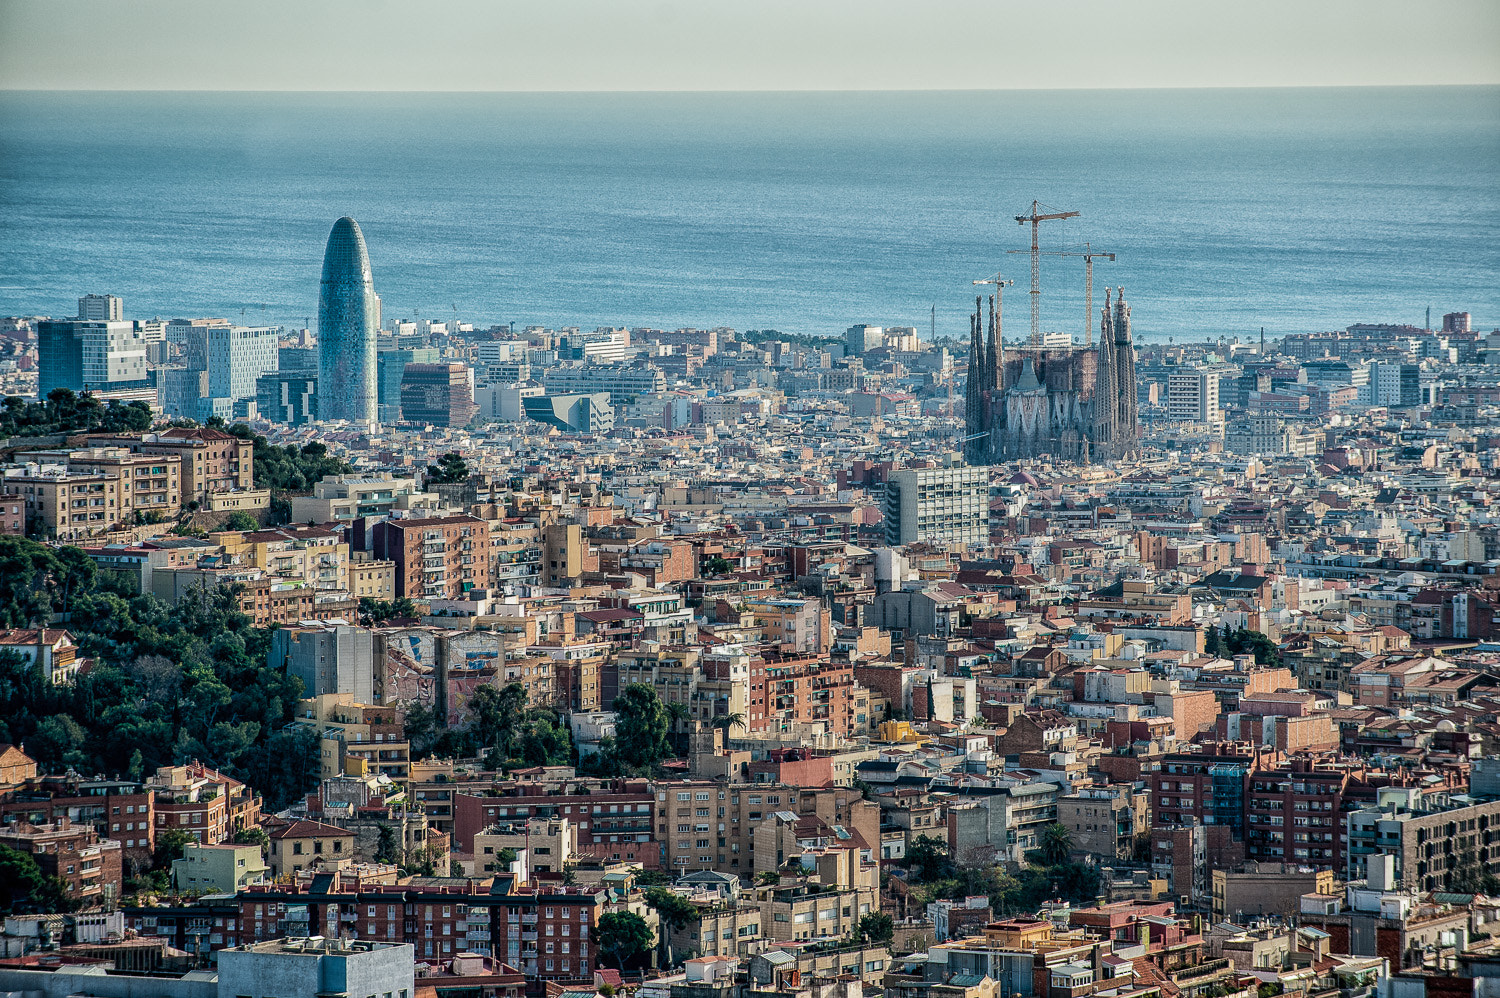 Photograph Barcelona by Paul Todd on 500px